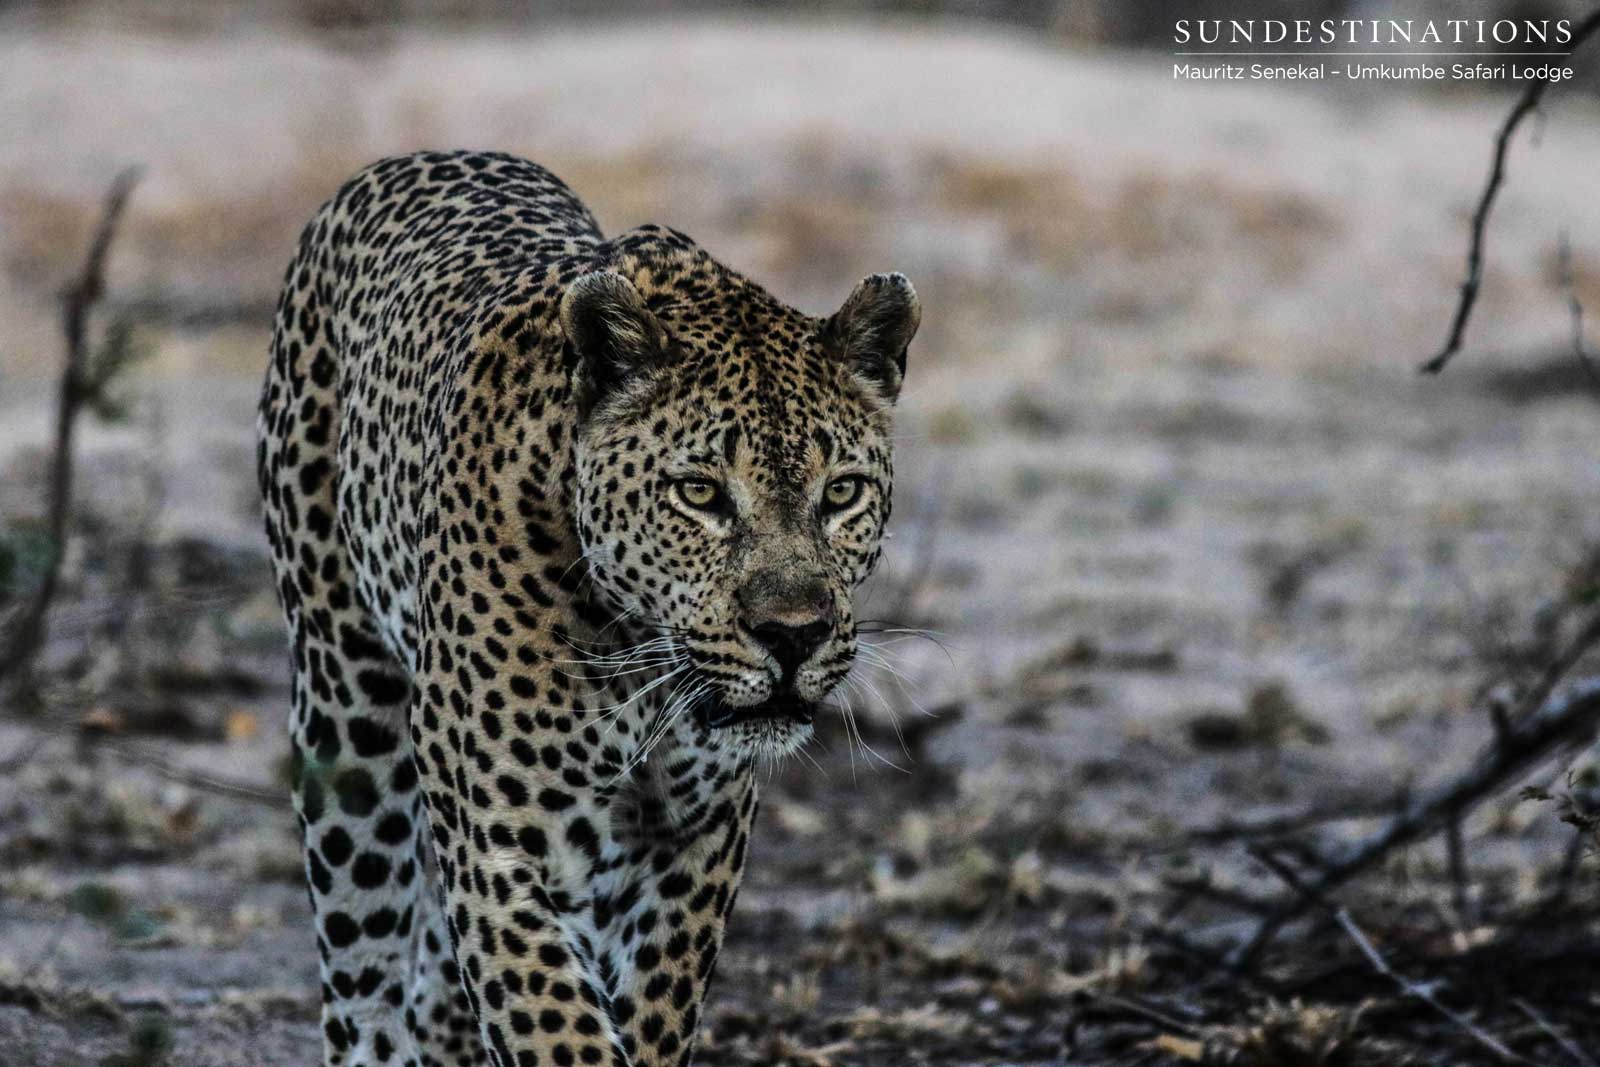 Mxabene's Battle with Kaxane Male Leopard